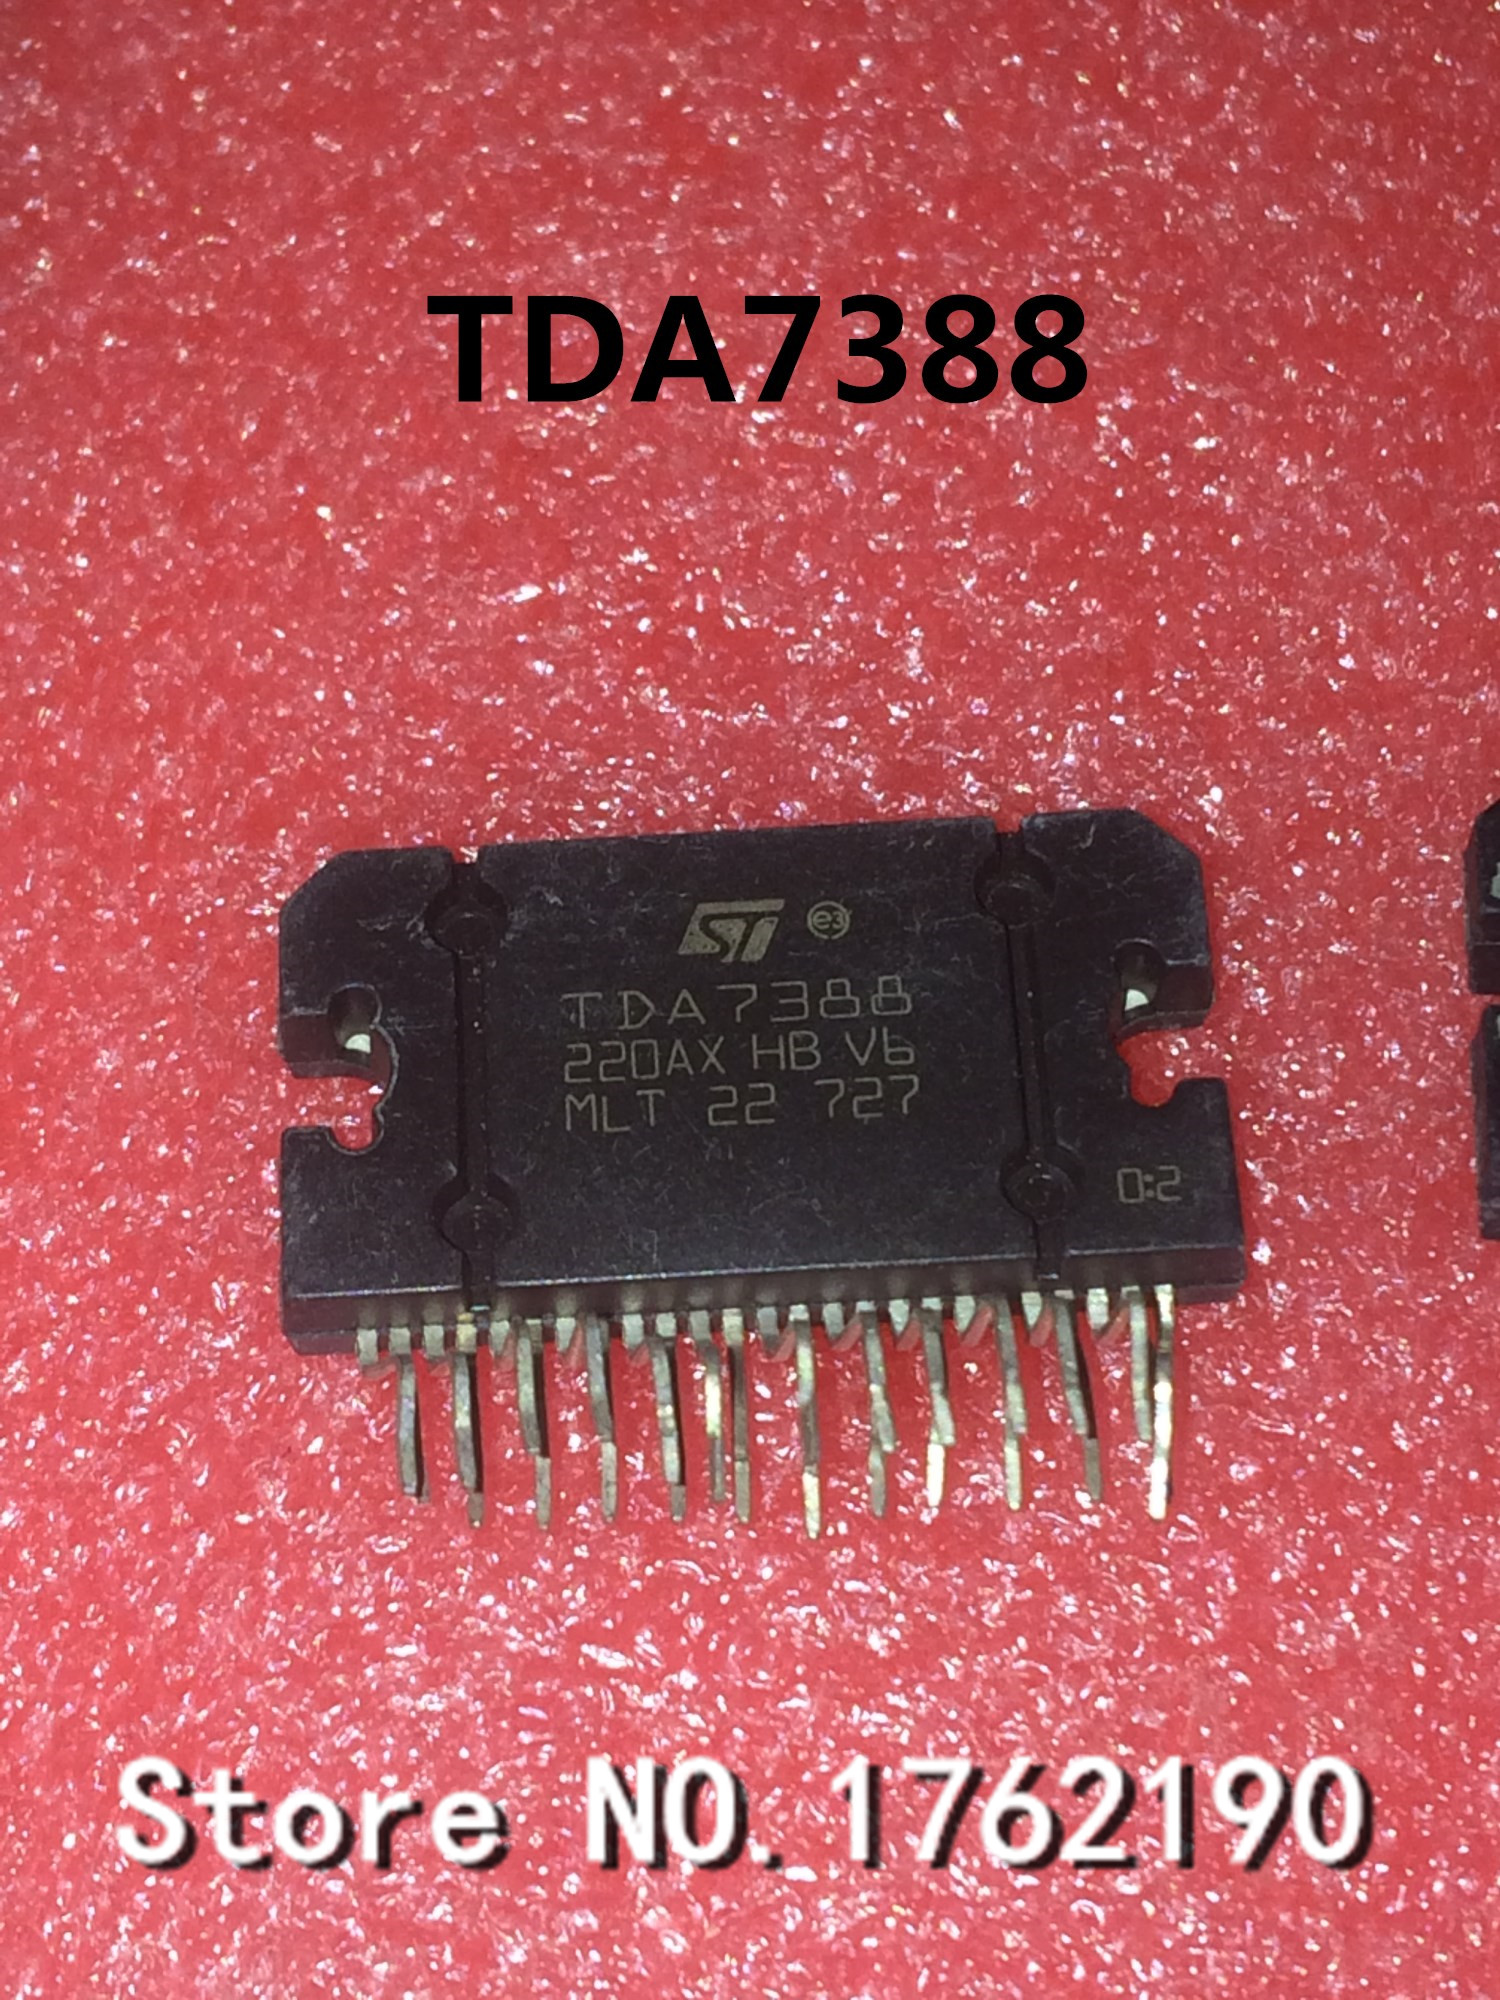 Buy Tda7388 Car Audio And Get Free Shipping On An Lm380 Amplifierchip Is Used In The Following Circuit